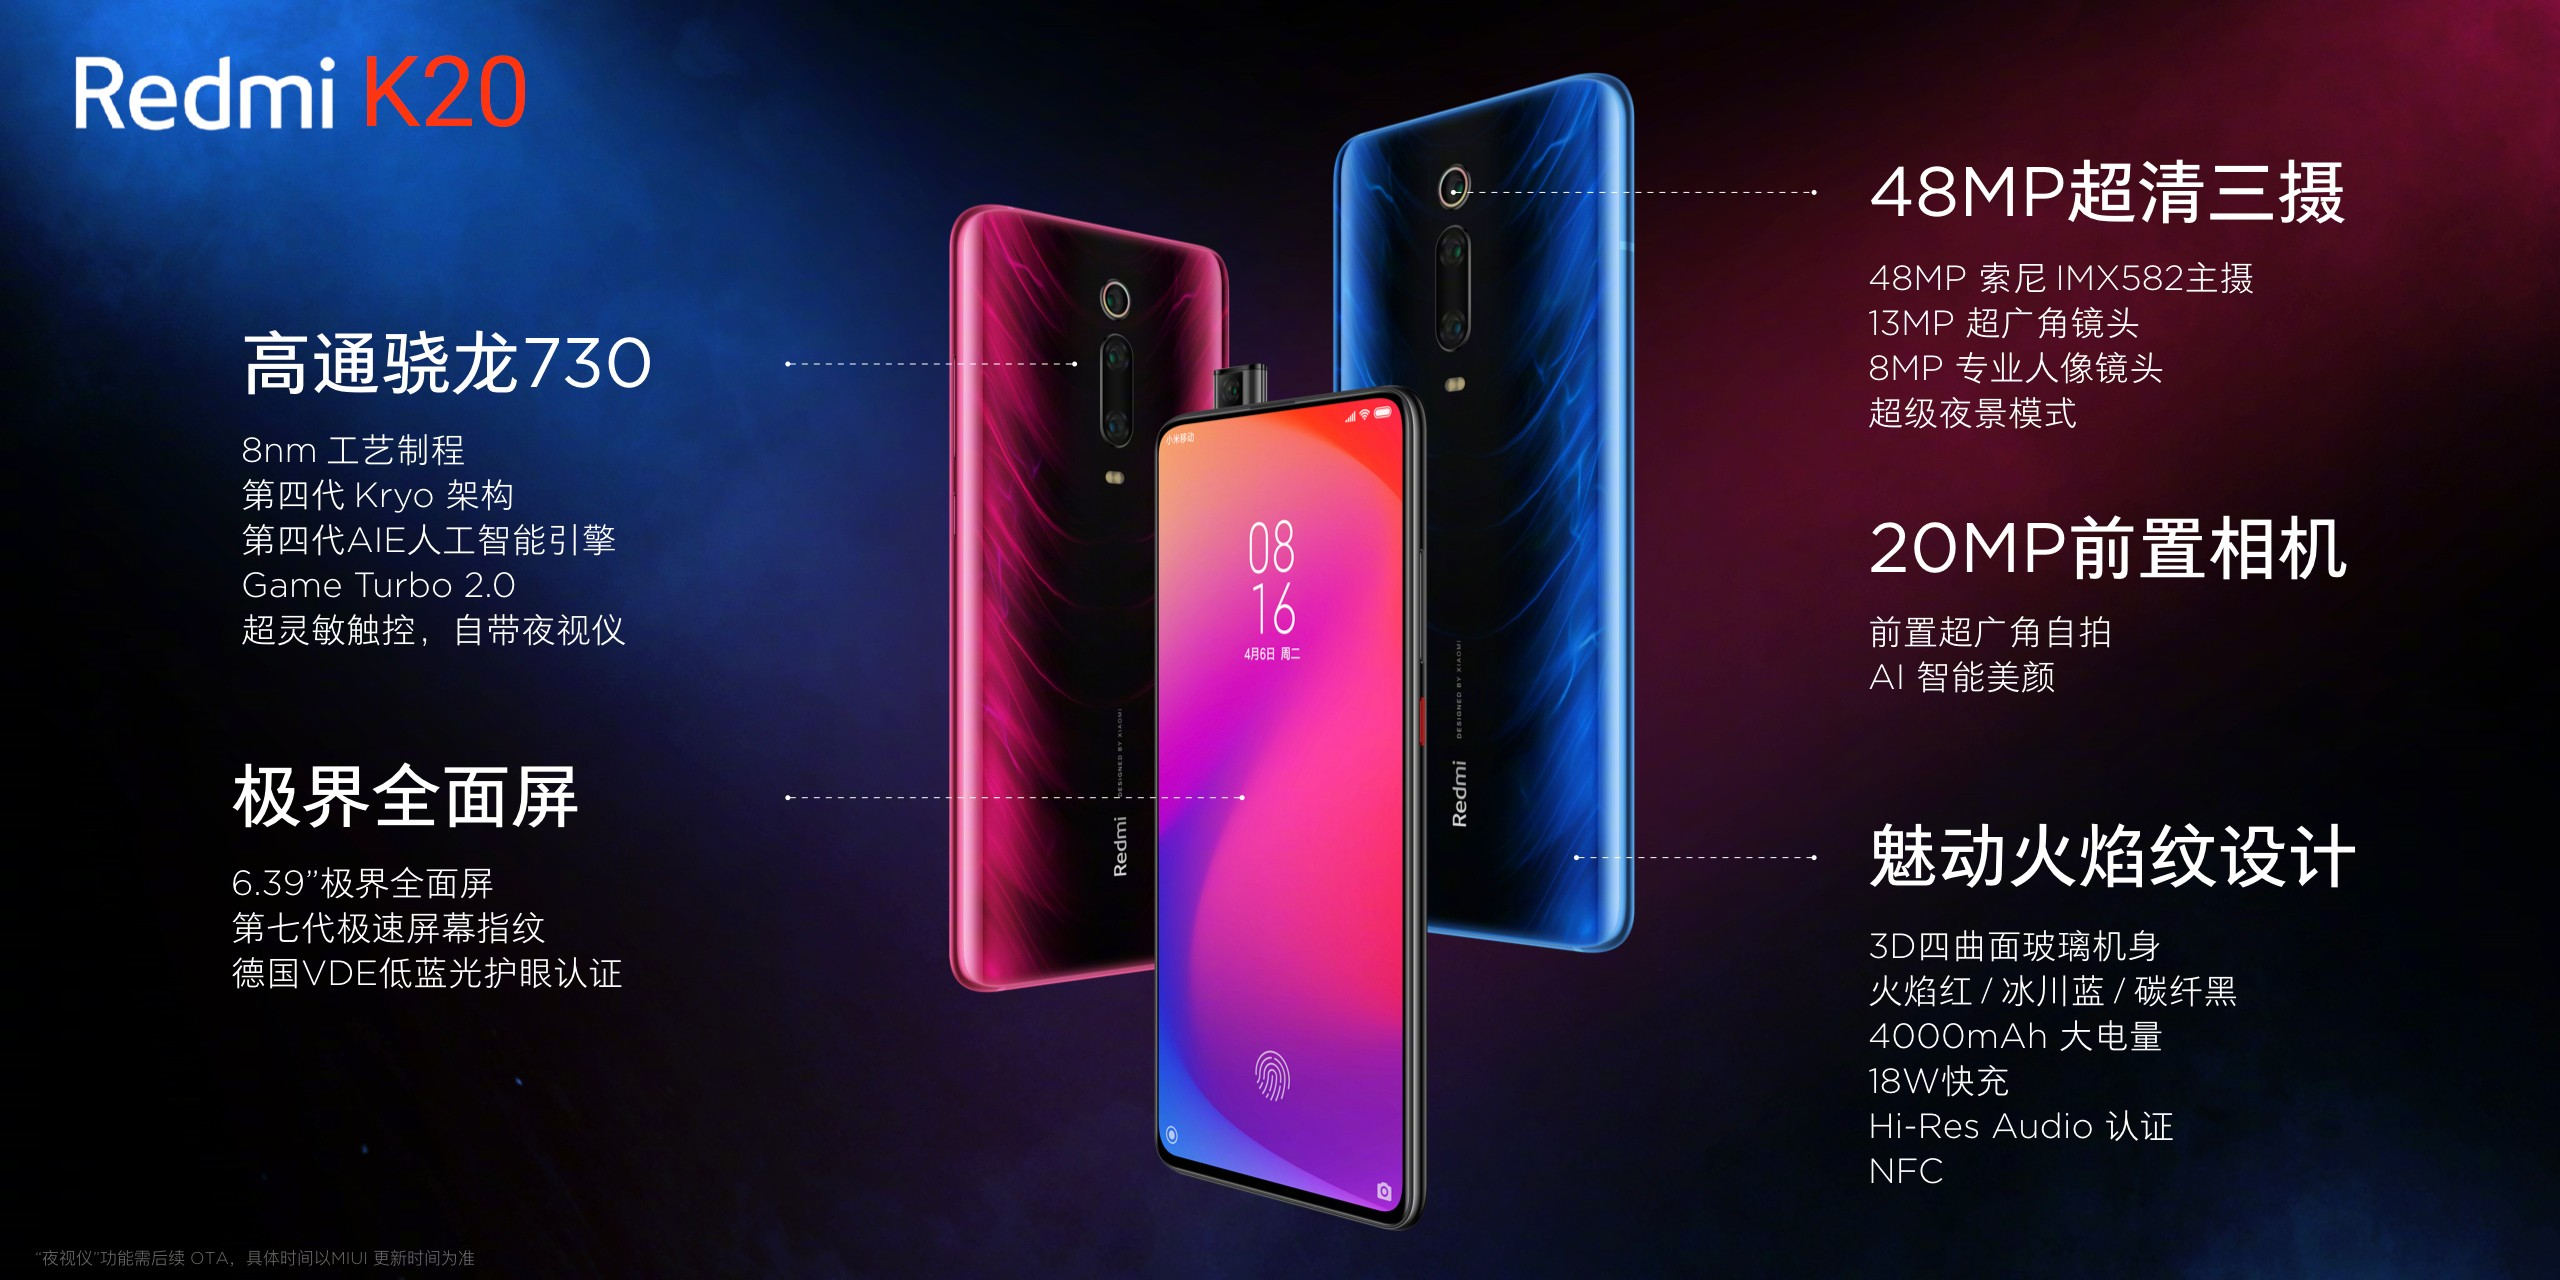 Redmi K20 Specifications